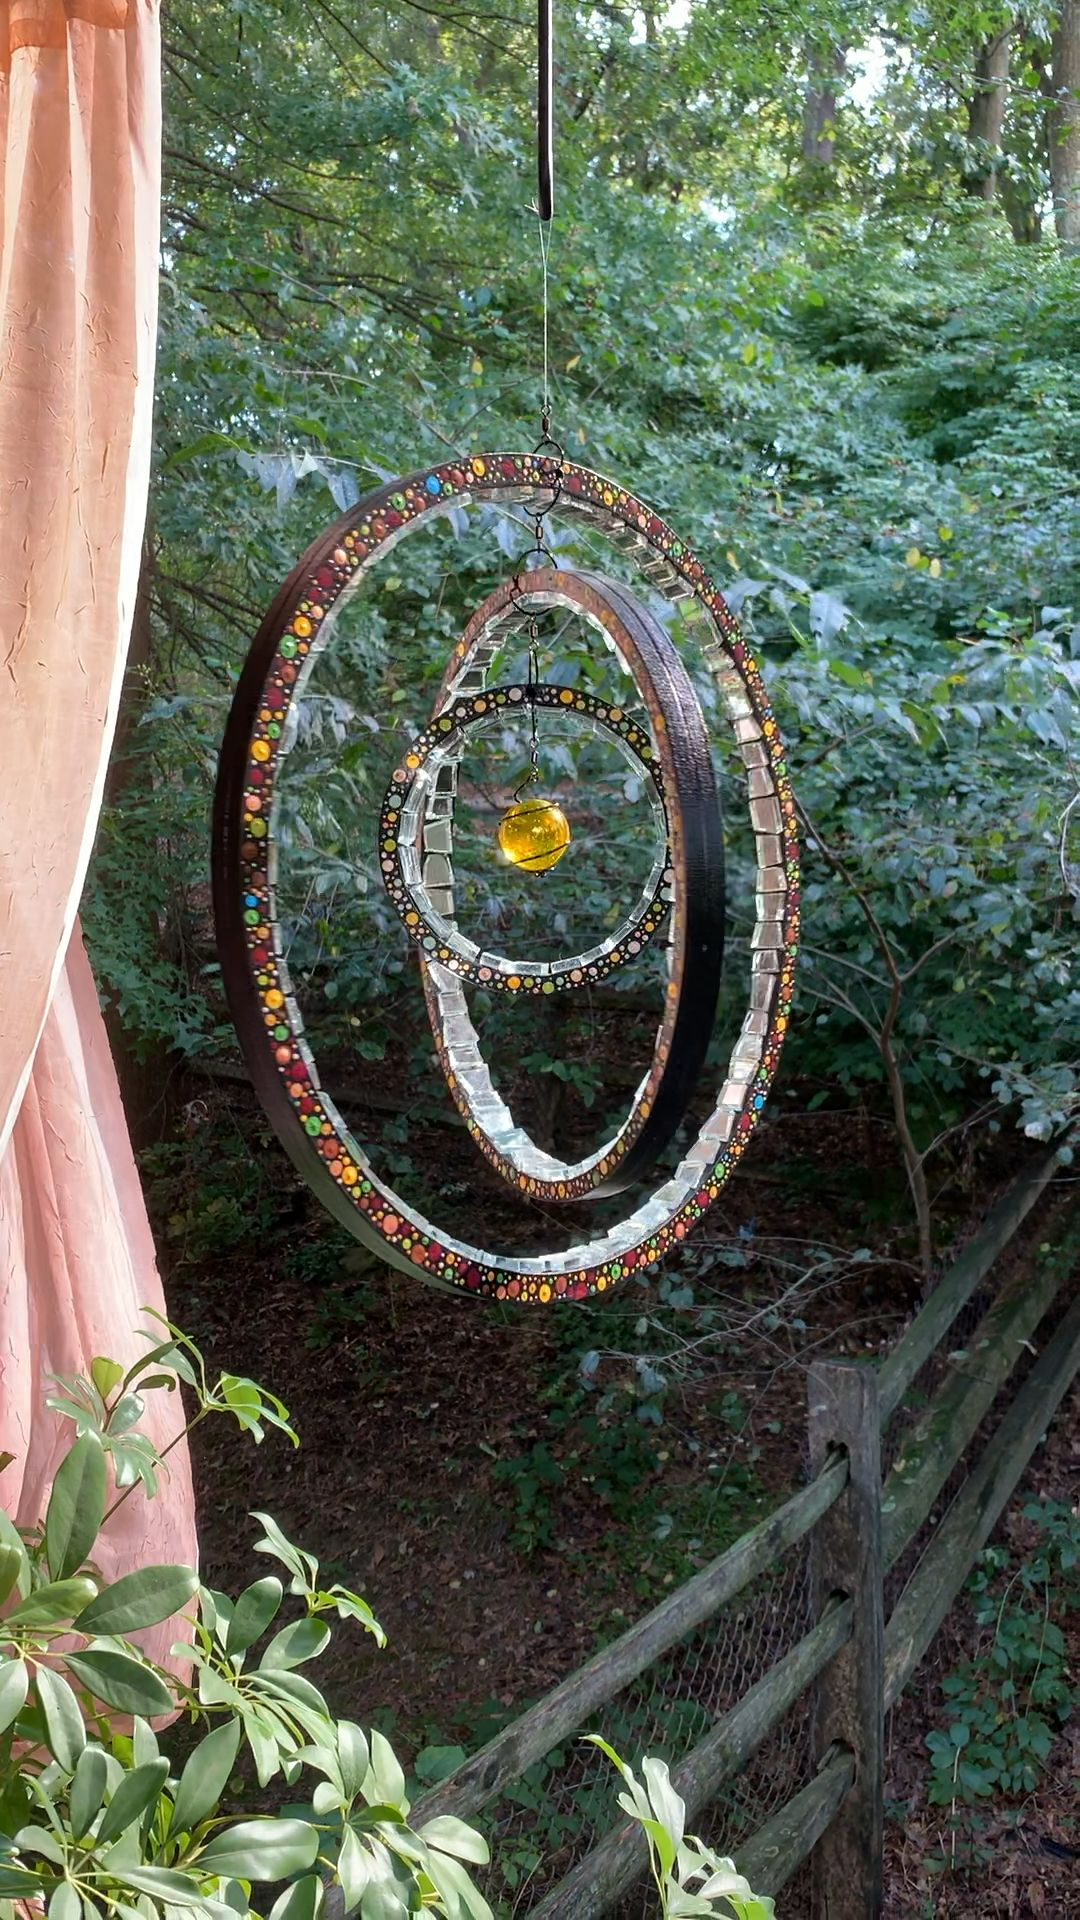 Indoor outdoor garden decoration..enhances a lighted space and lifts the energy. Mosaic design with mirror tiles on hand painted wooden circles that add color and light in a unique style.  #gardendecor #mosaicart #bohemiandecor #bohostyle